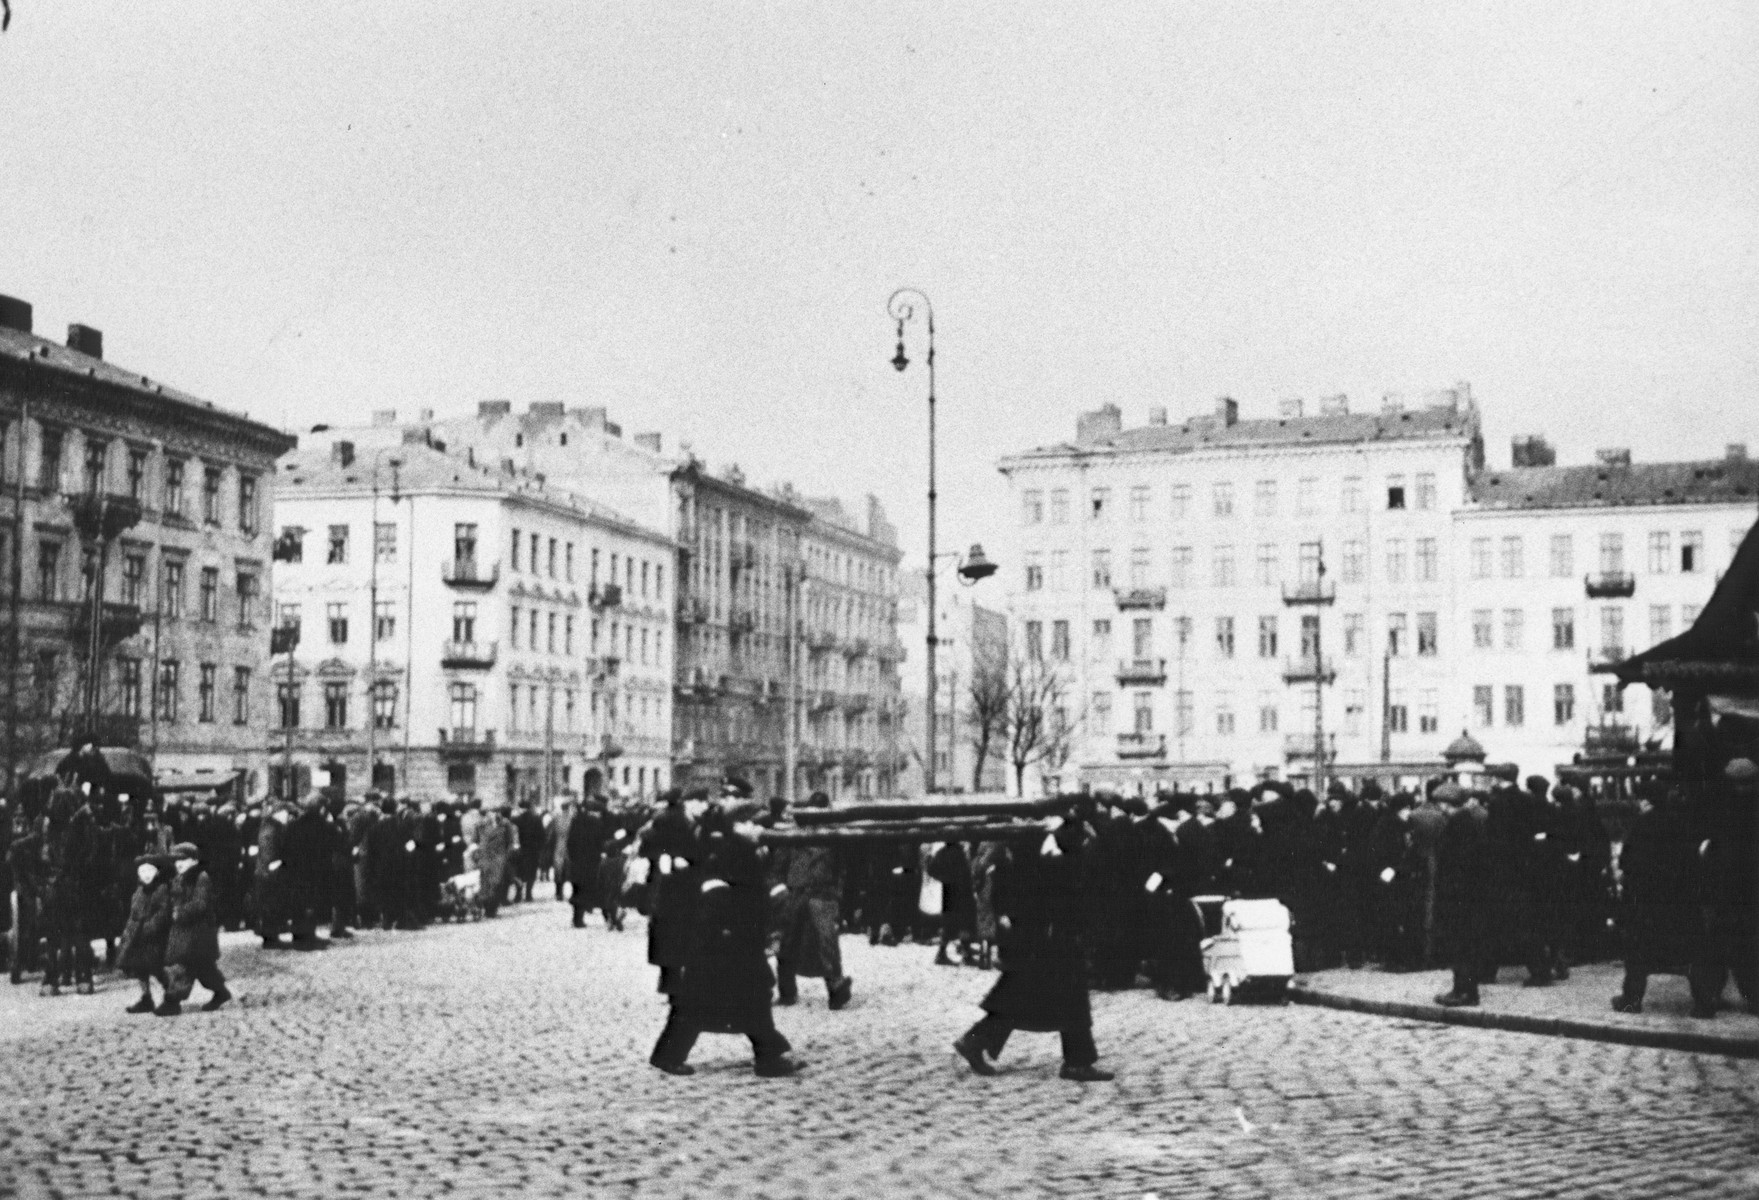 Jews are gathered in large numbers in a public square in the Warsaw ghetto.